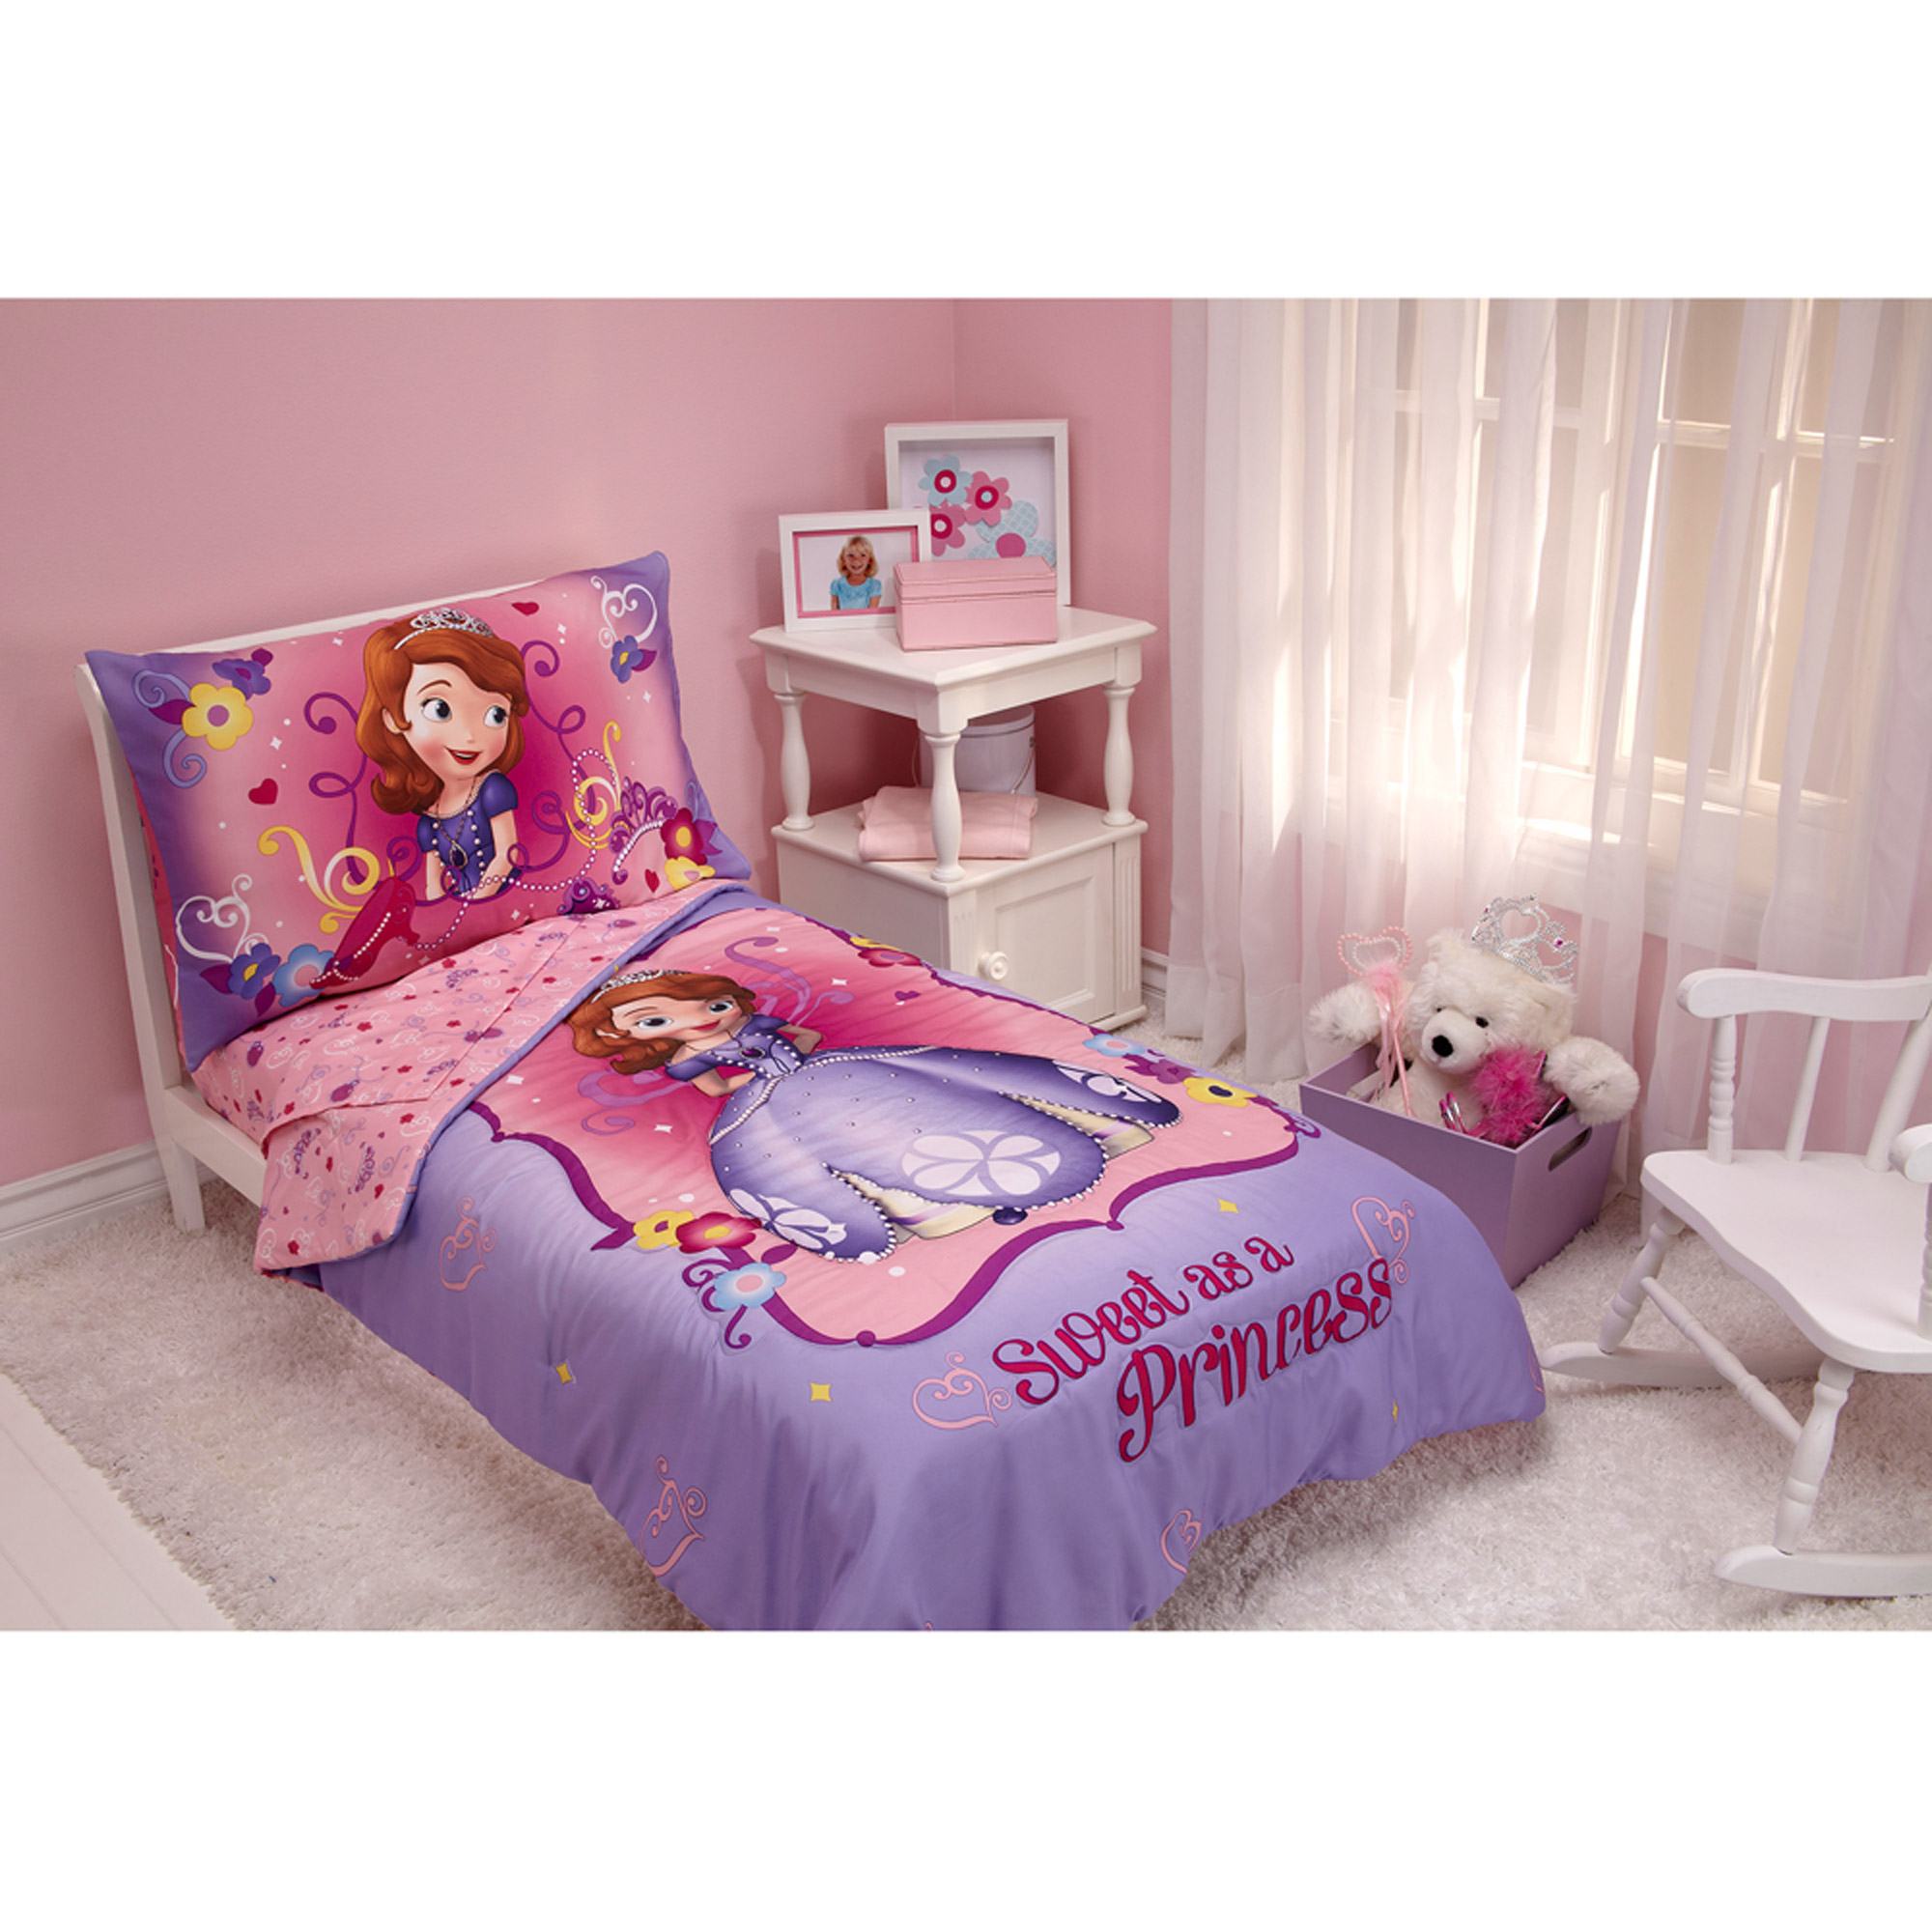 Disney Sofia the First 3pc Toddler Bedding Set with BONUS Matching Pillow Case